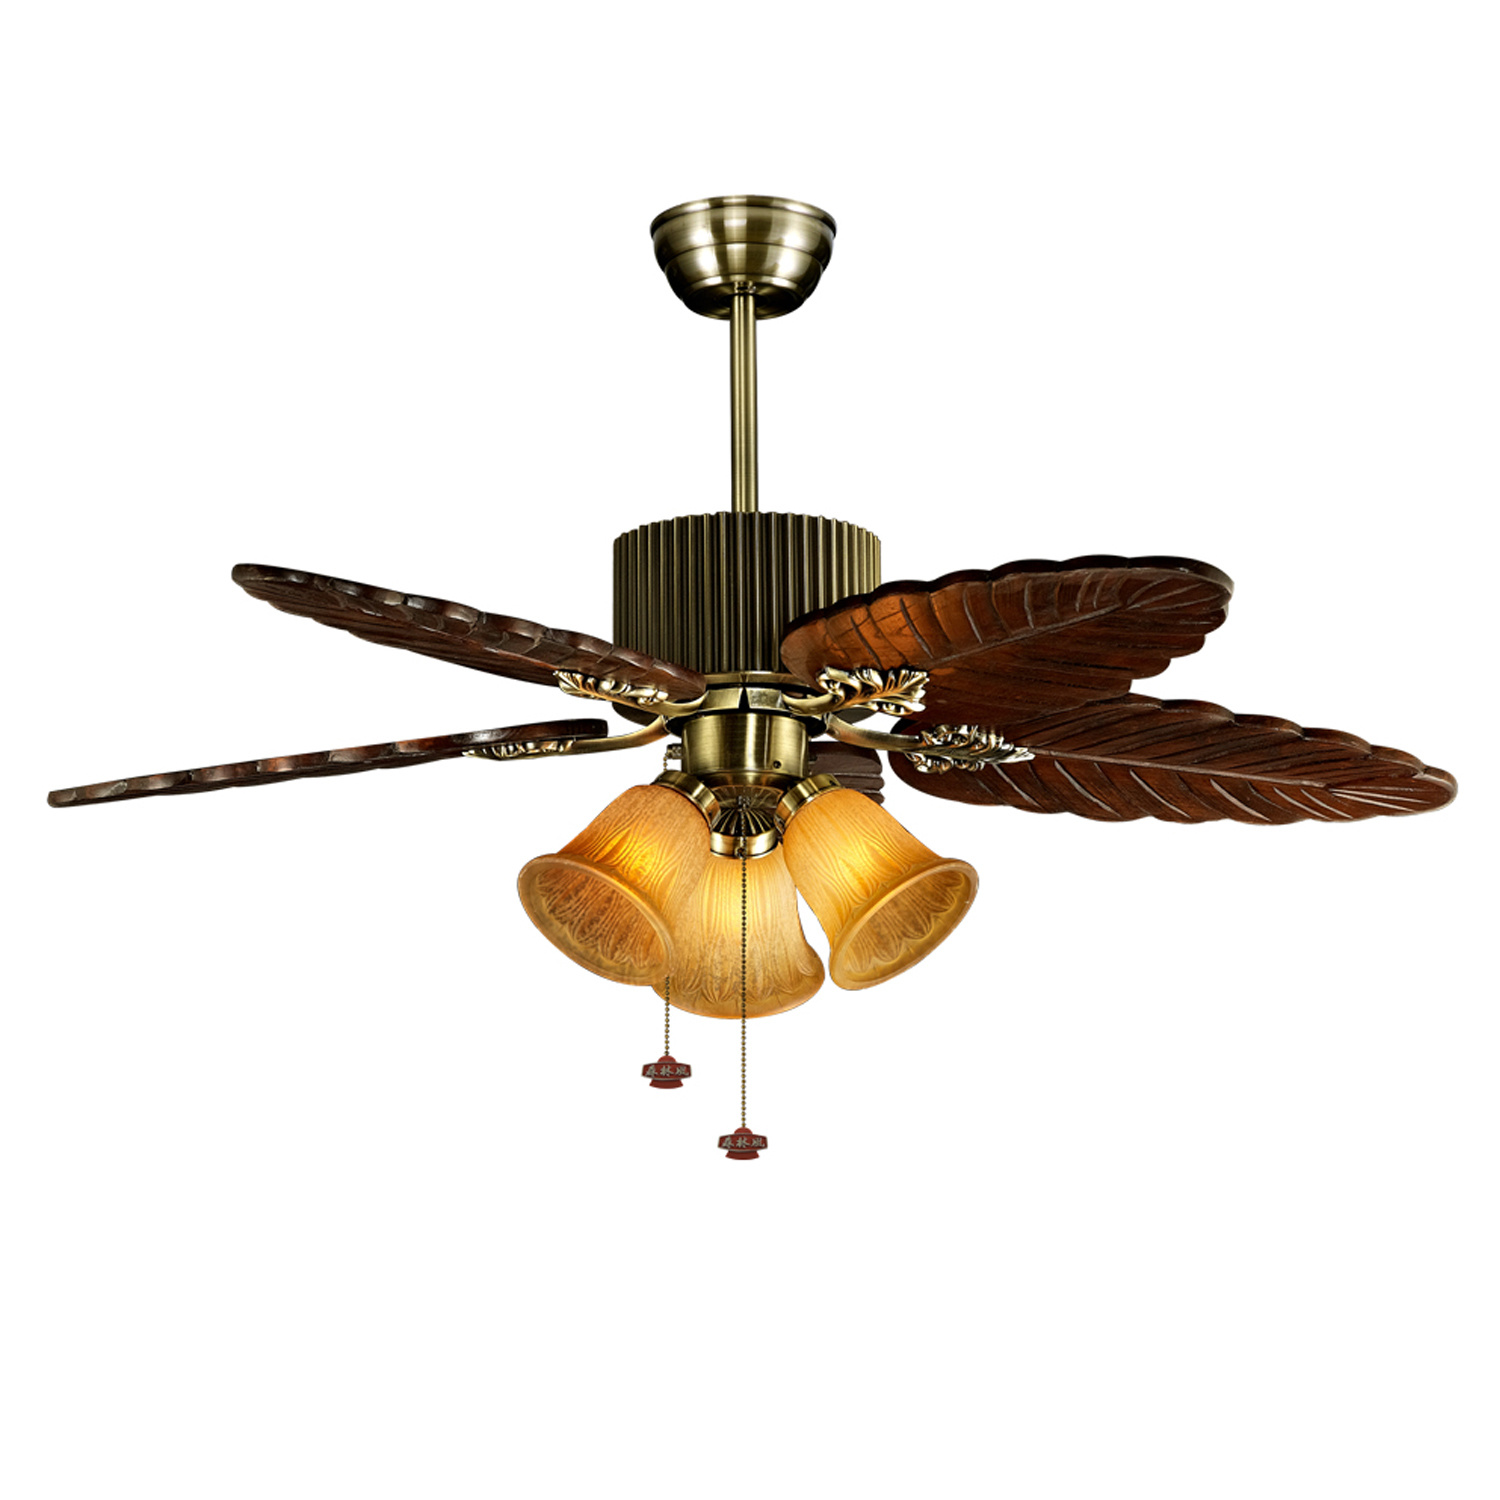 China Retro Style Five Solid Wood Blades Dining Room Use Ceiling Fan With Light China Solid Wood Blades Fan And Retro Style Ceiling Fan Price